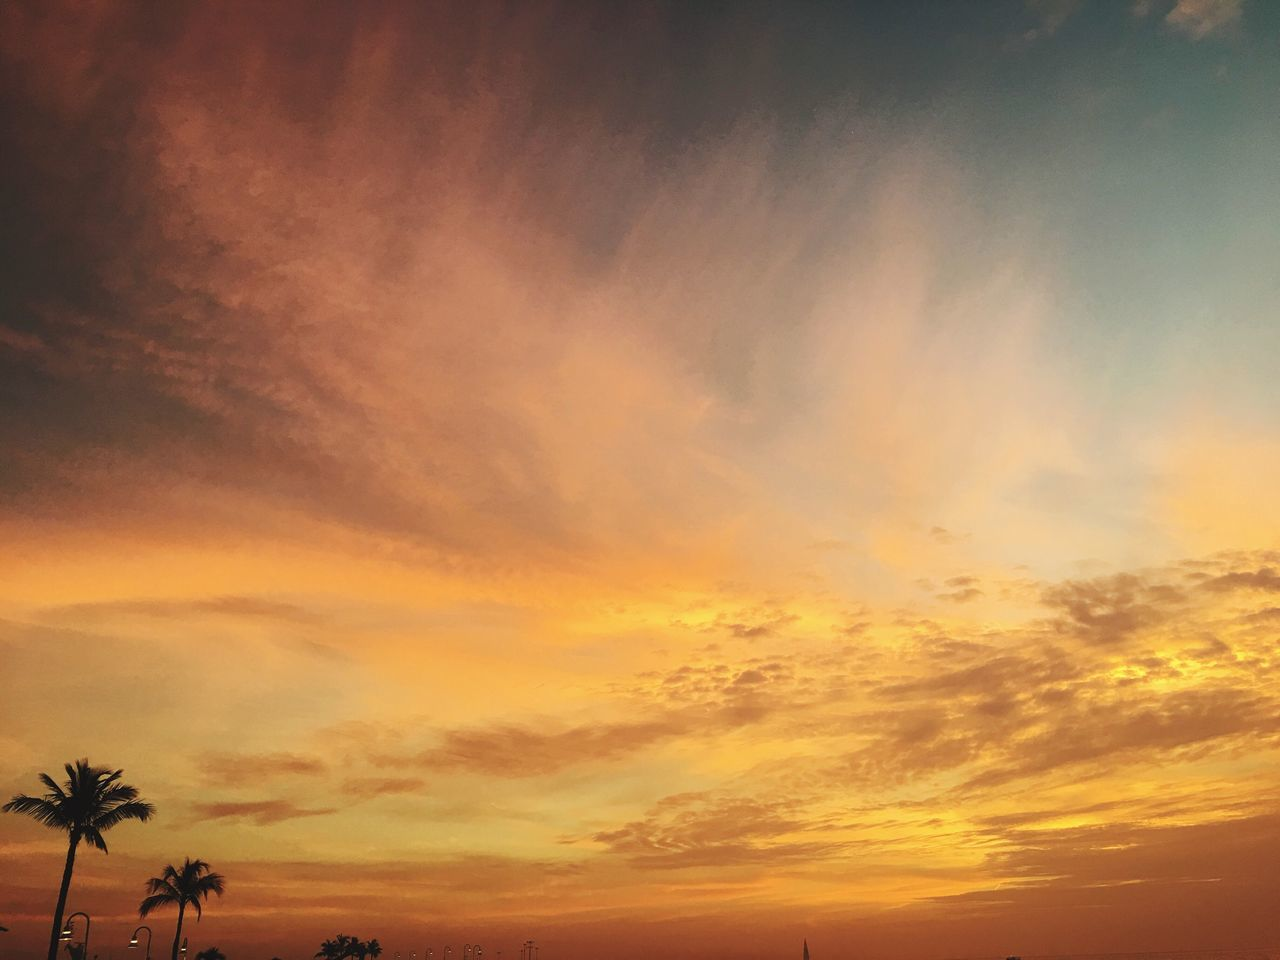 sunset, orange color, beauty in nature, cloud - sky, nature, scenics, sky, silhouette, tranquil scene, tranquility, dramatic sky, no people, tree, outdoors, low angle view, palm tree, day